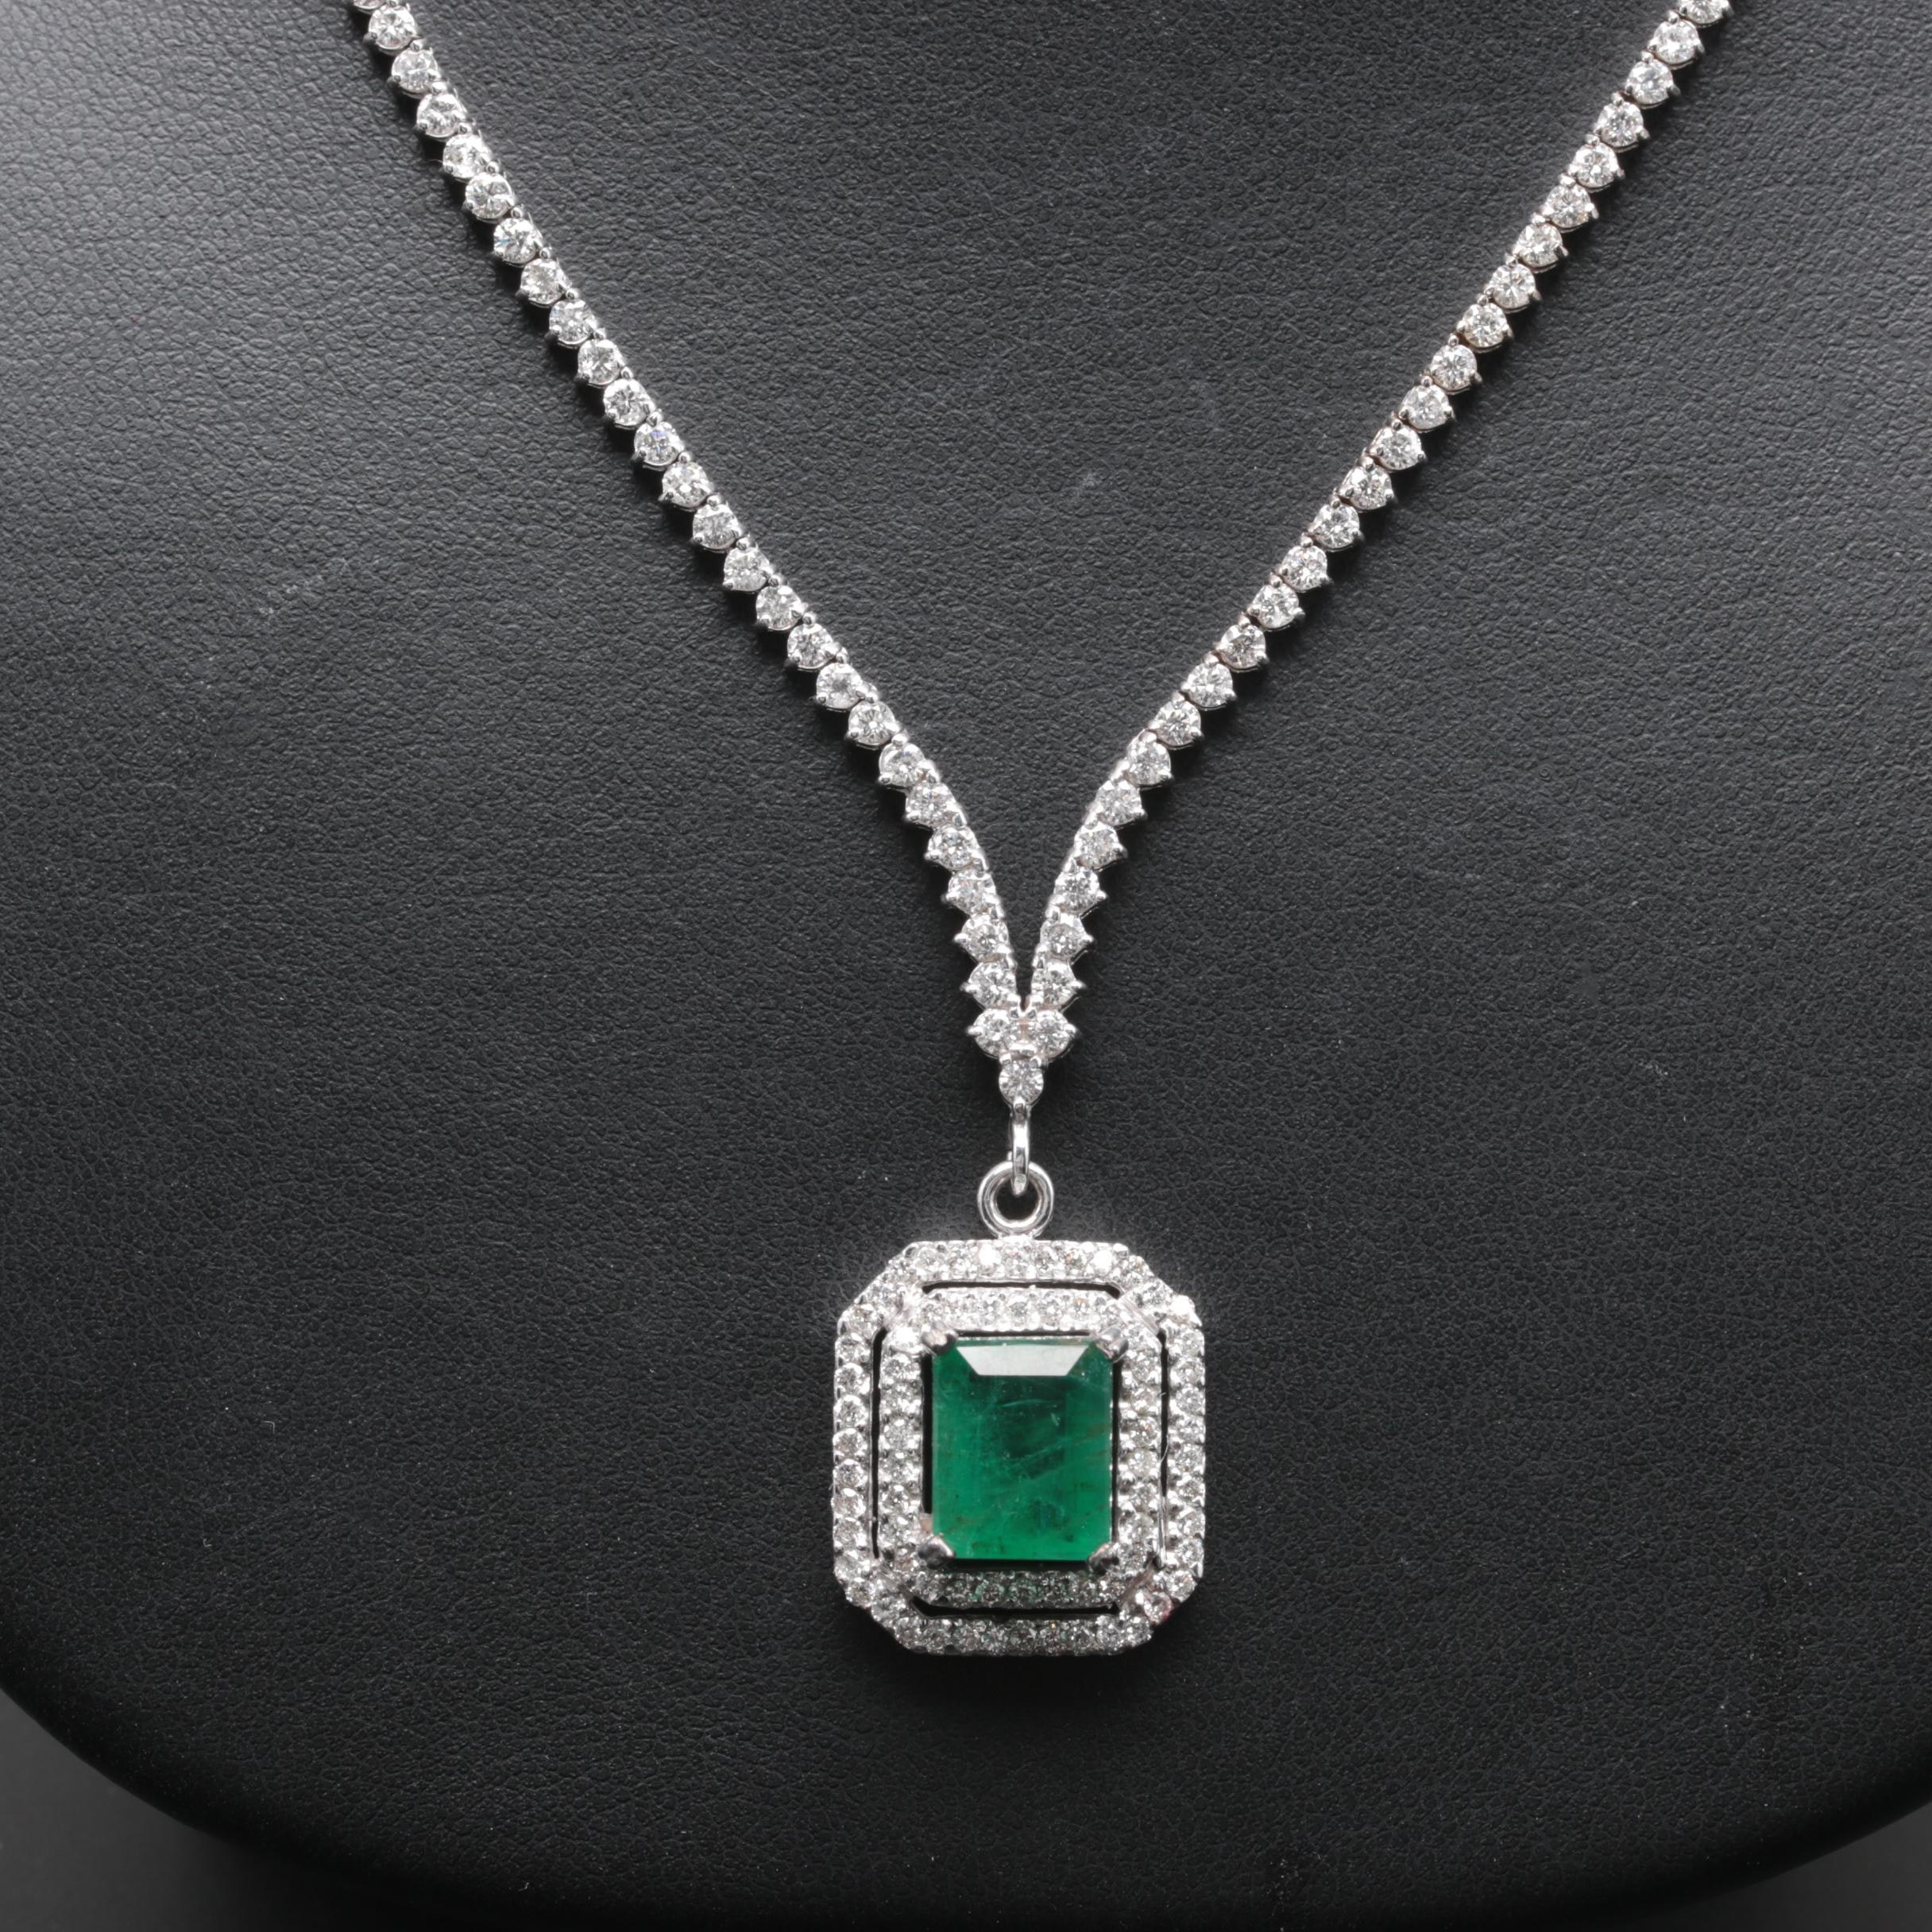 14K and 18K White Gold 3.51 CT Emerald and 3.69 CTW Diamond Necklace